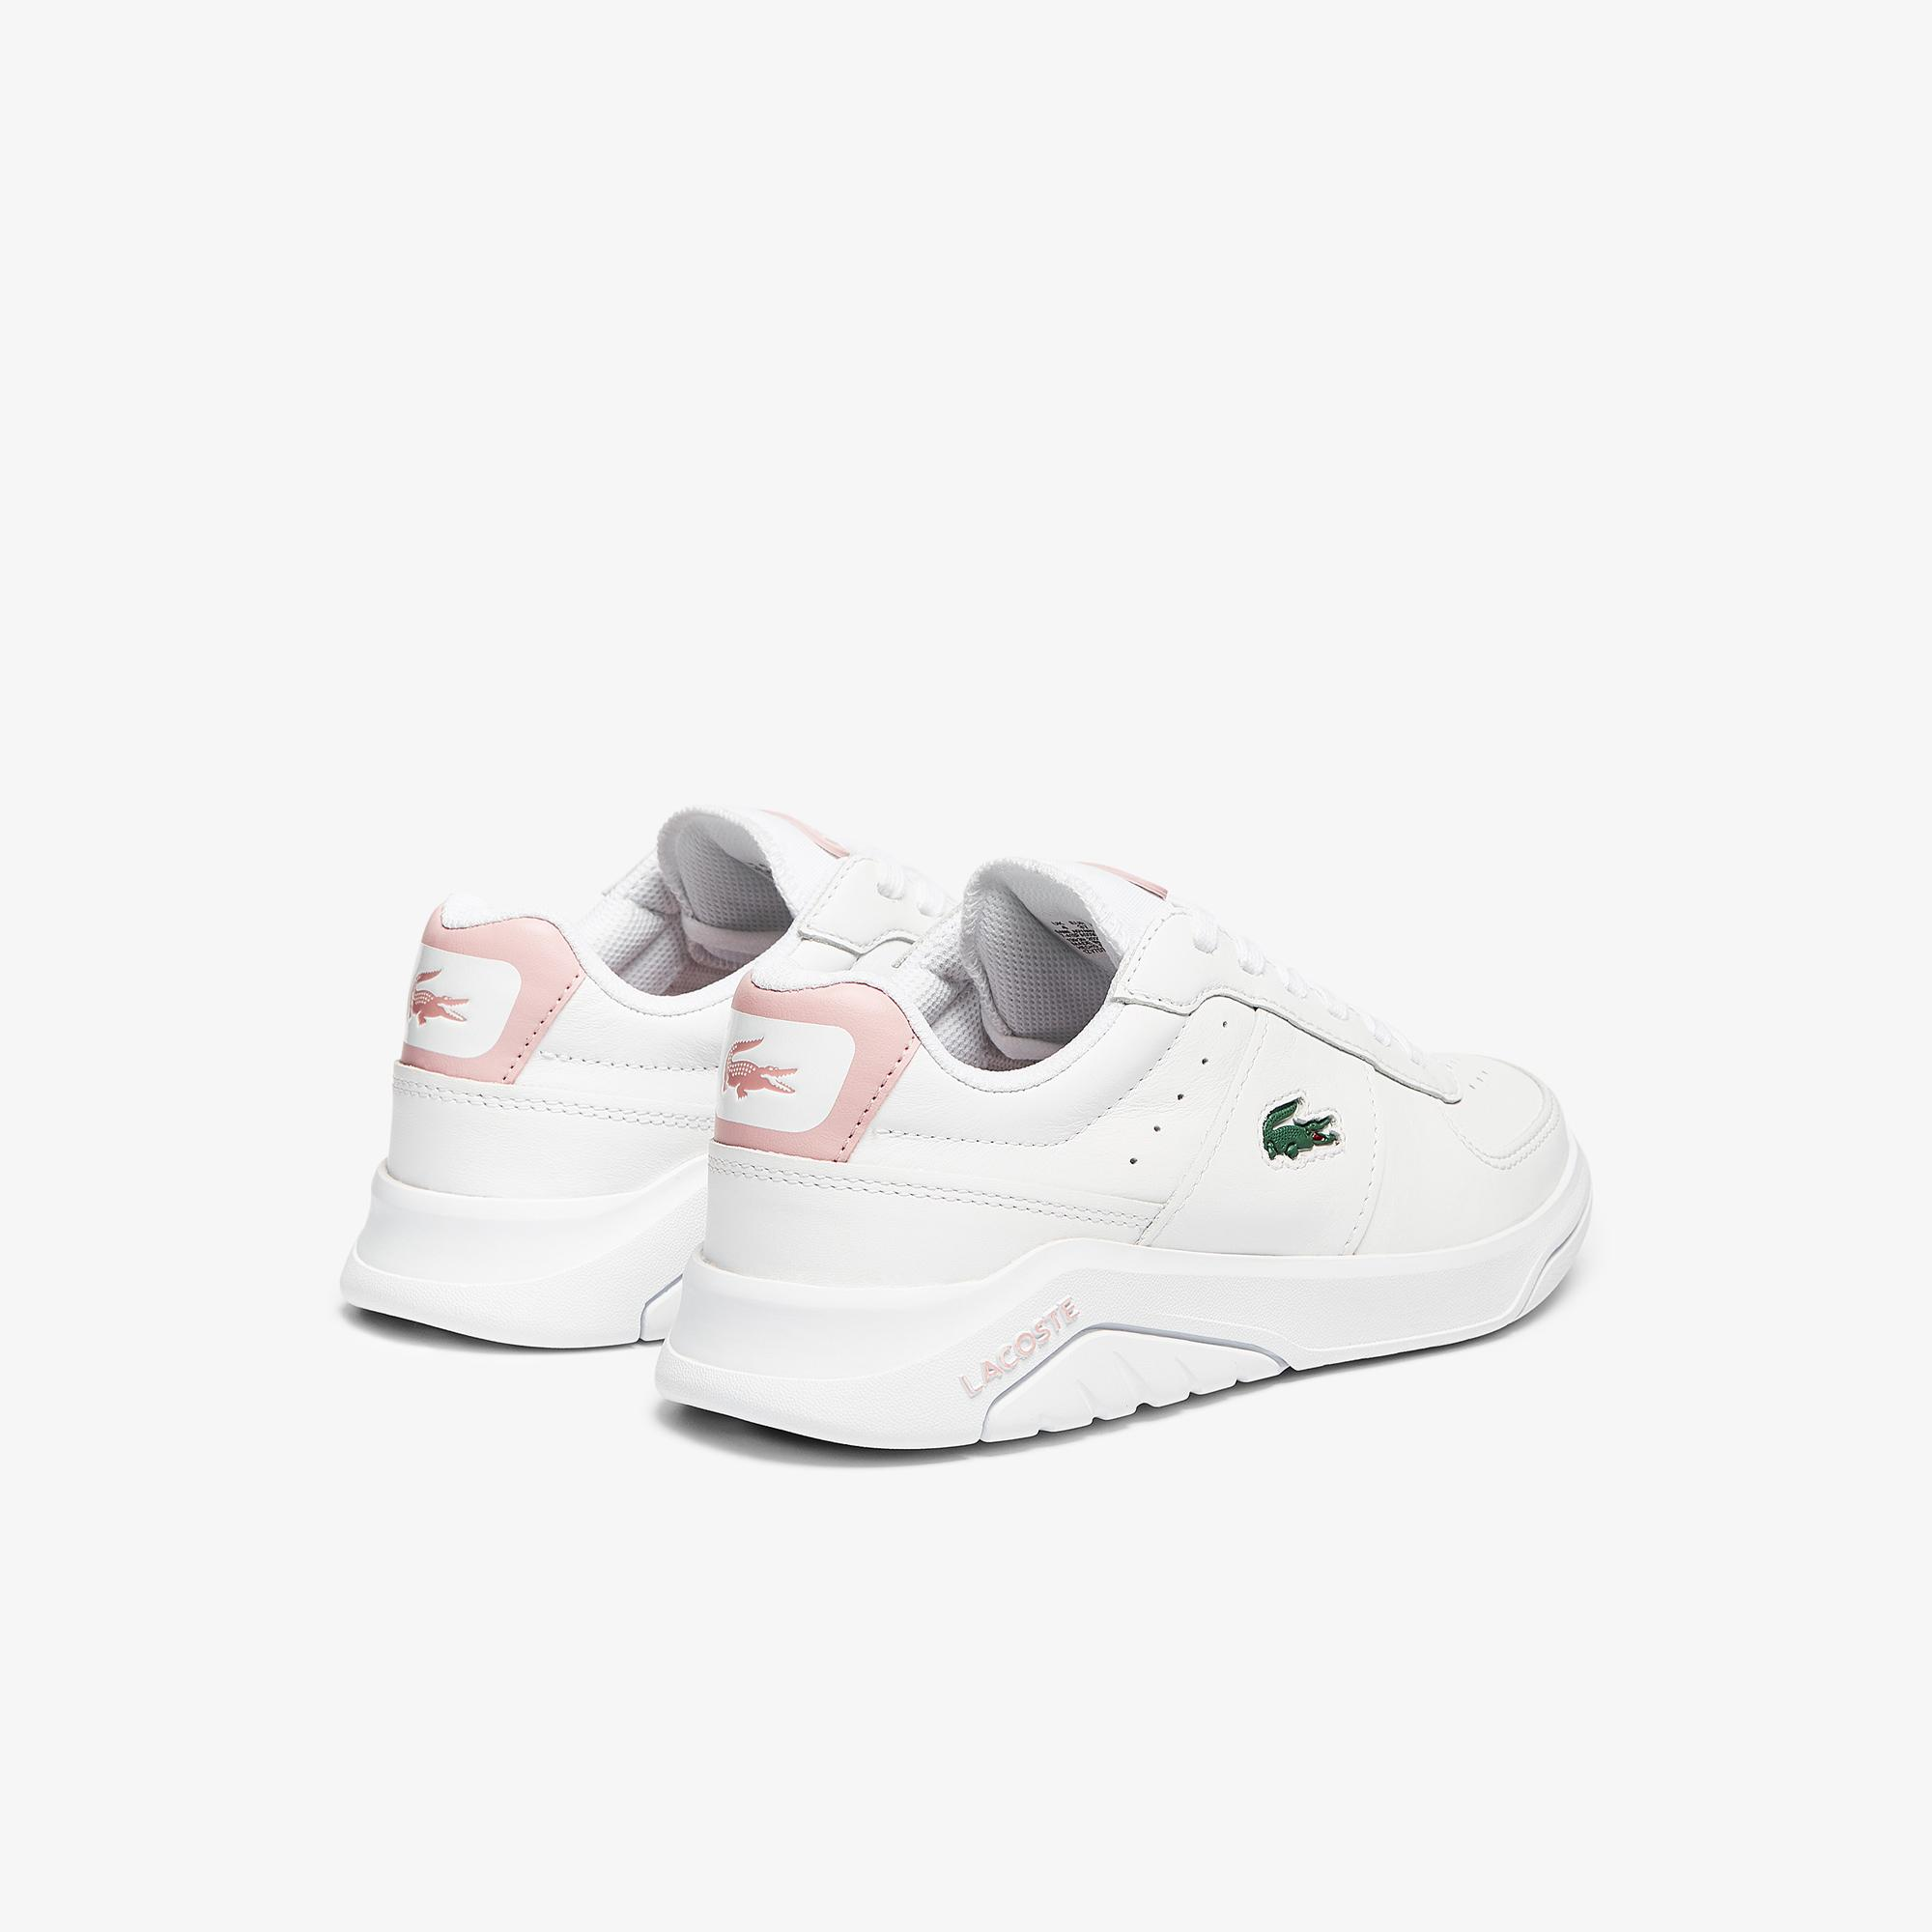 Lacoste Women's Game Advance 0721 2 Sfa Shoes